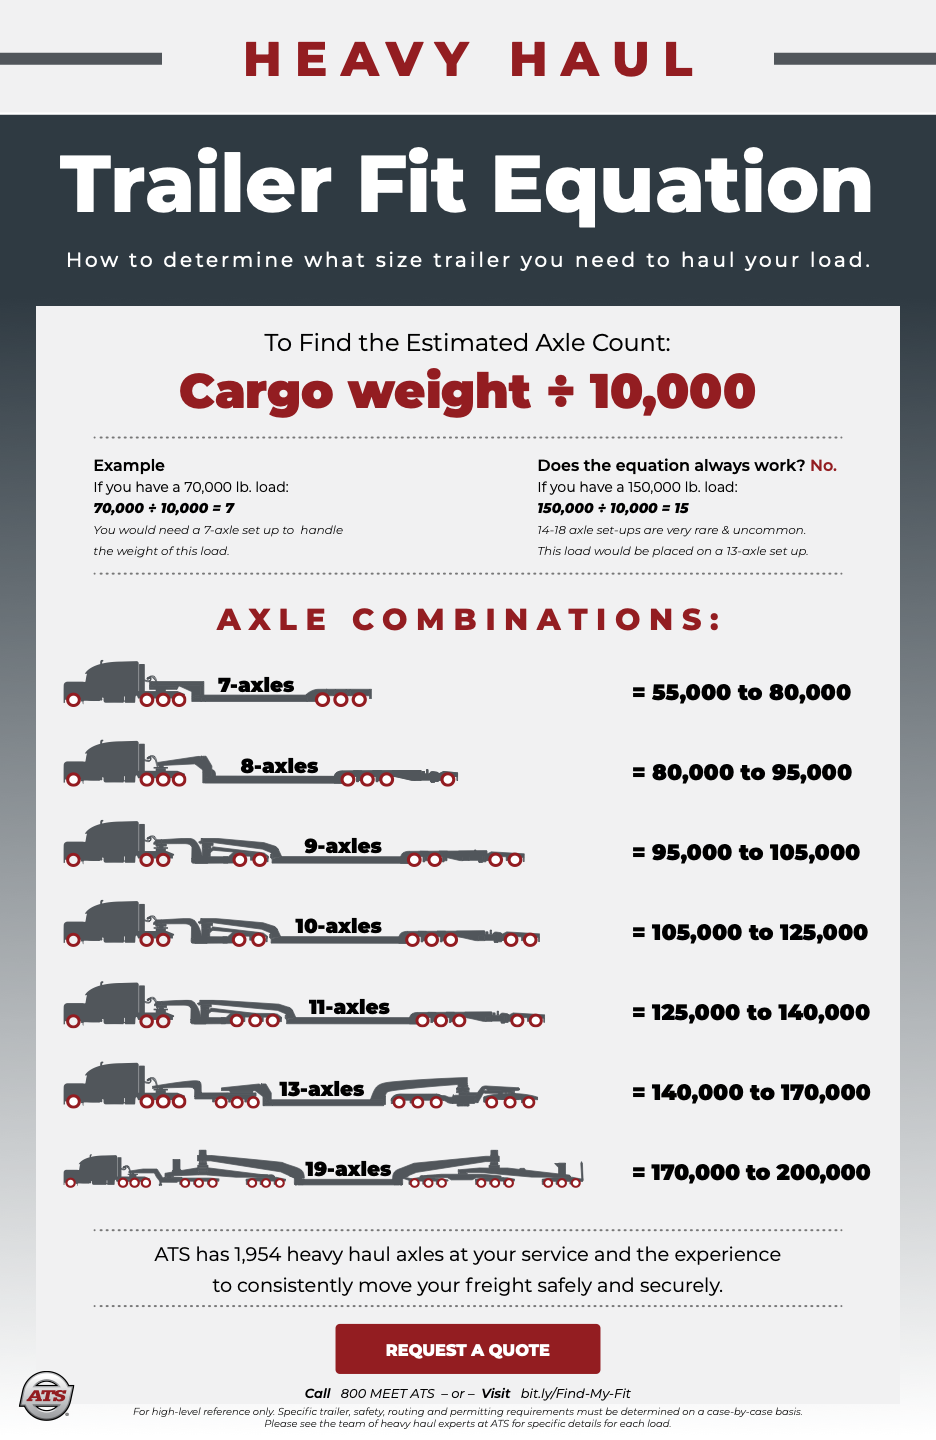 Trailer Fit Equation Infographic